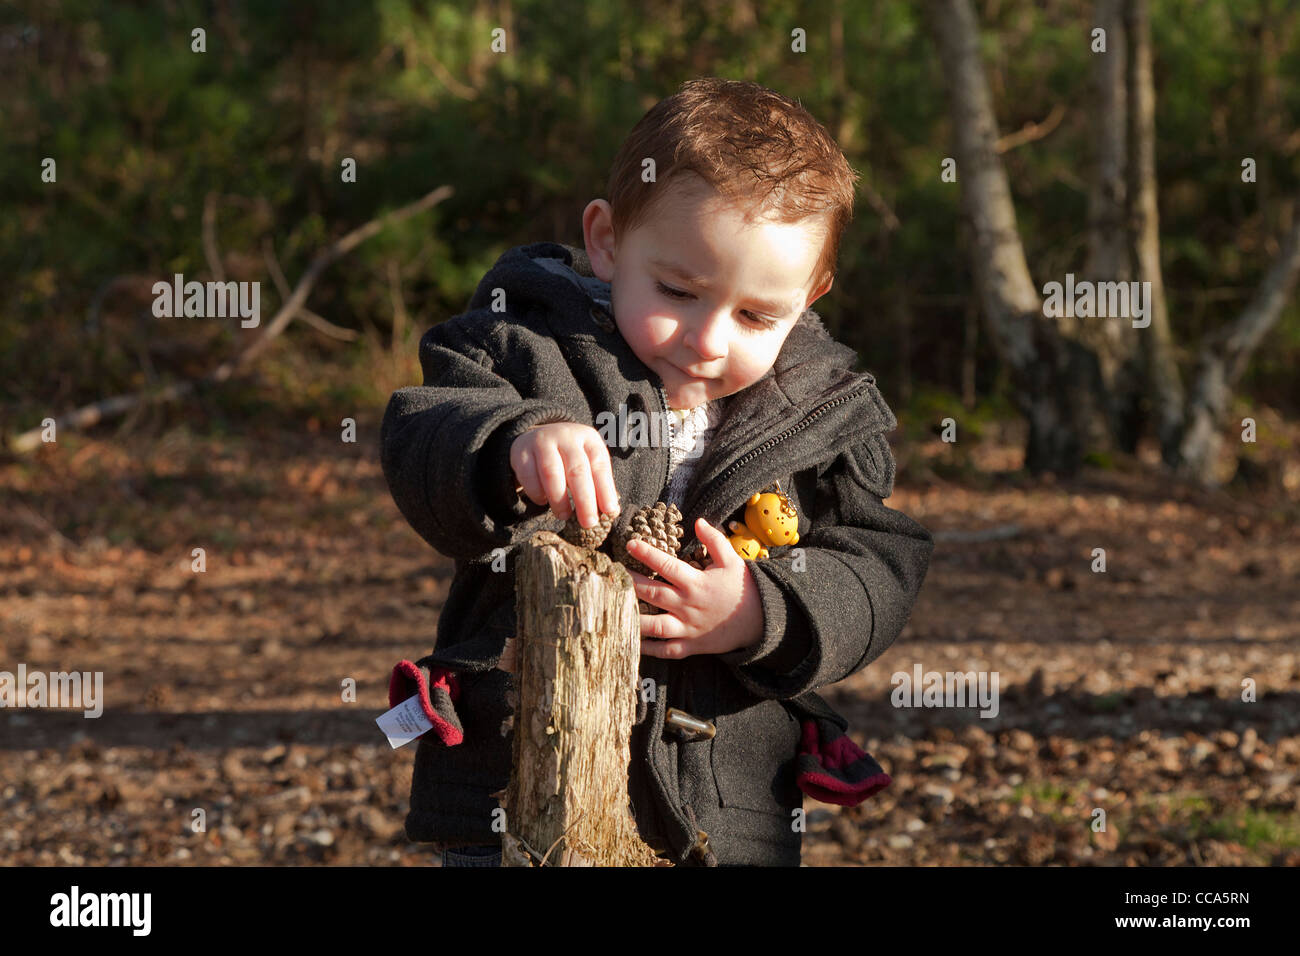 Small boy in a duffel coat balancing fir cones on a log stump outside in the forest - Stock Image